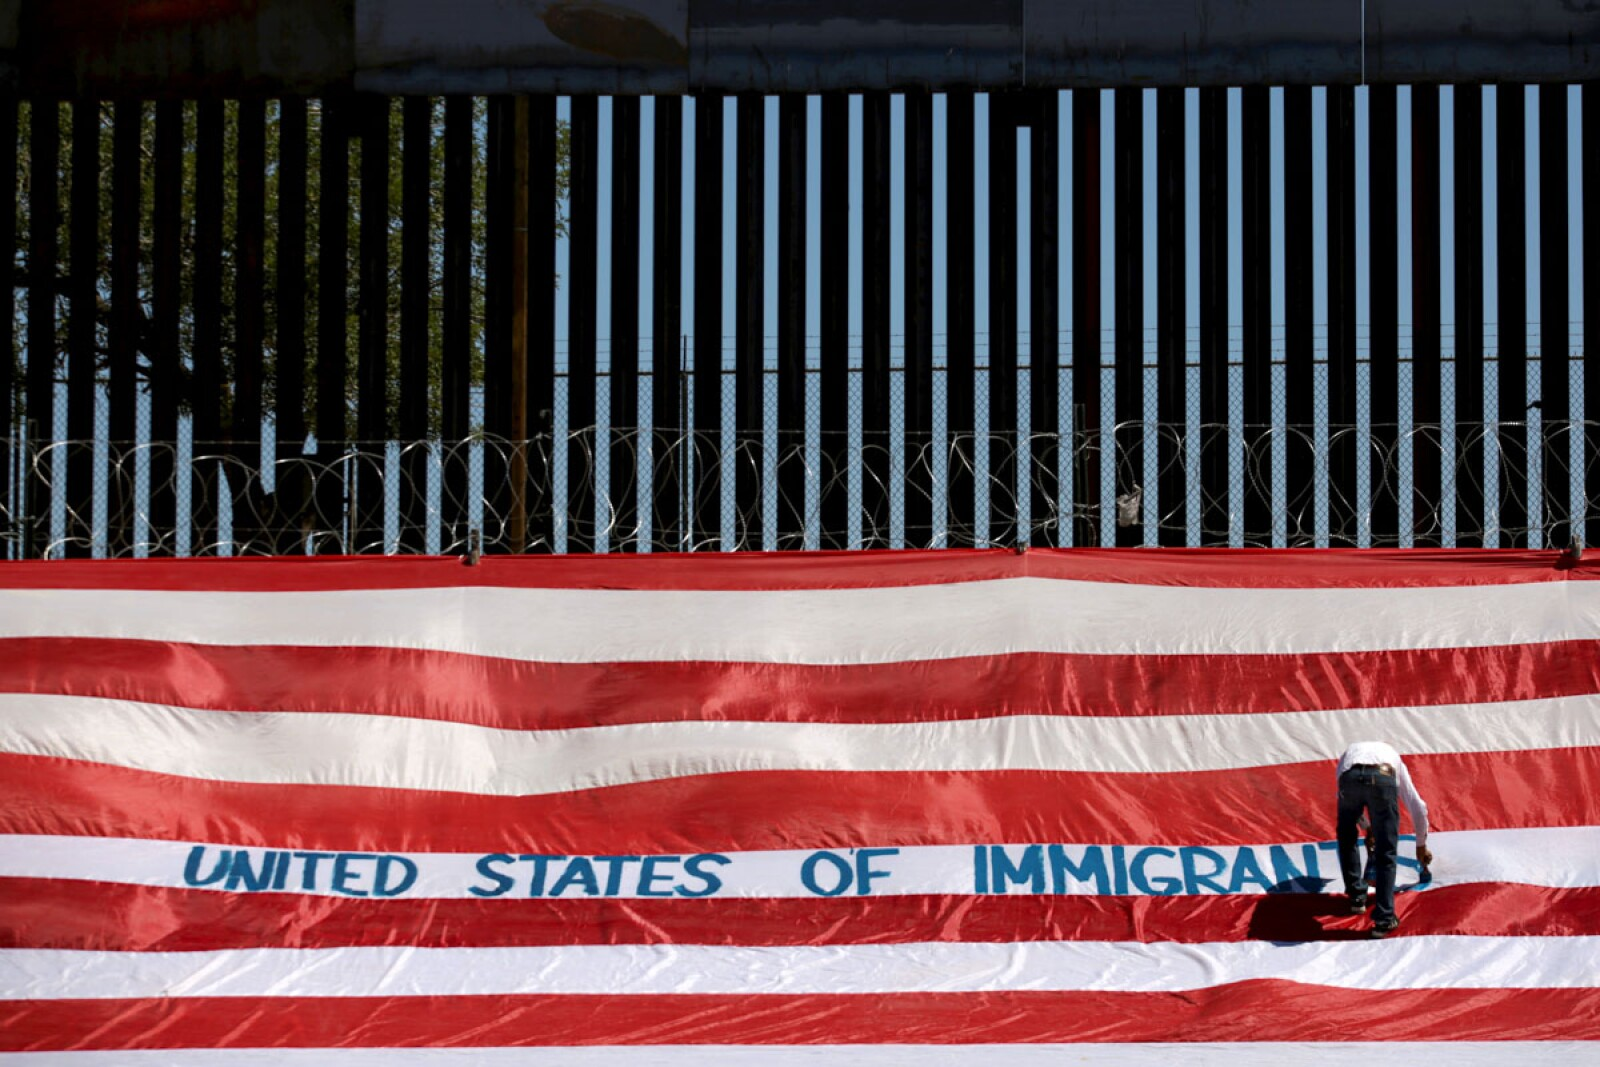 United States of Inmigrants